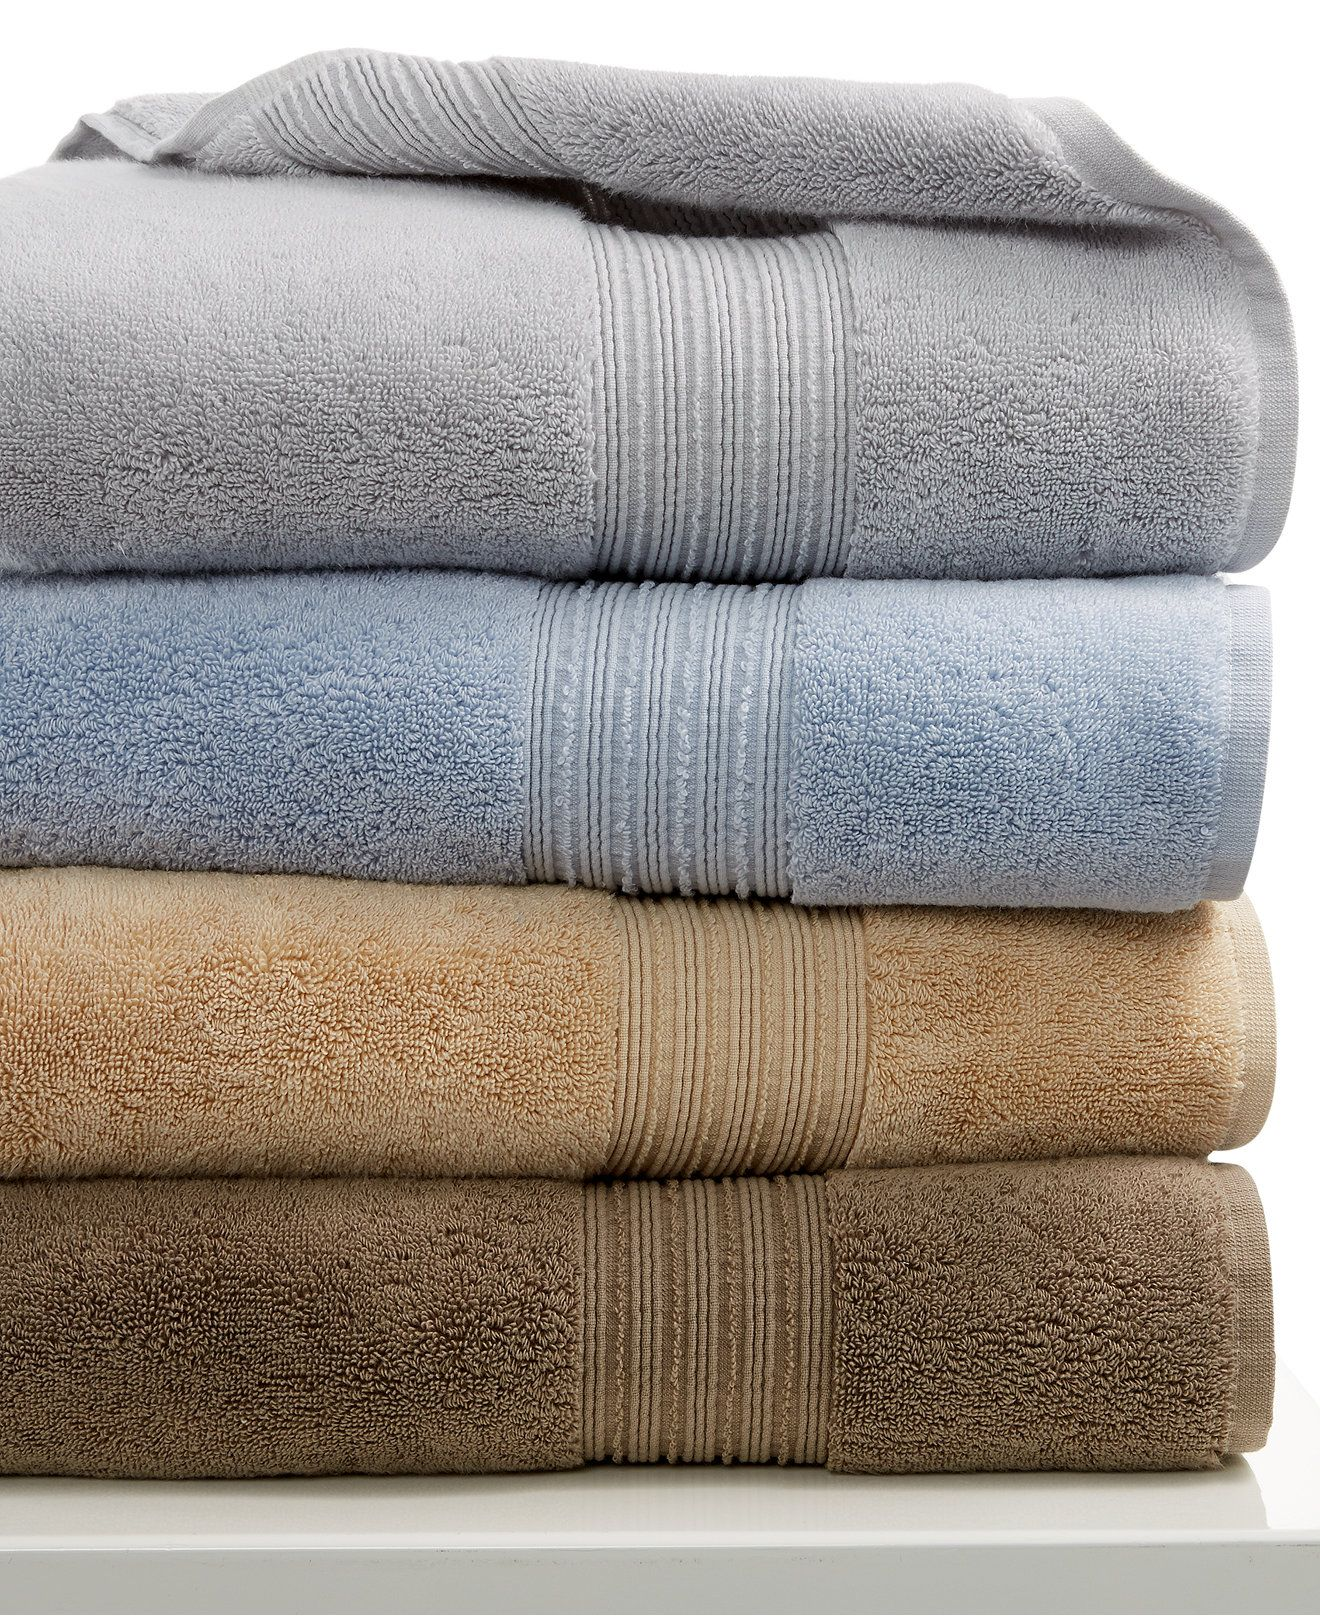 Hotel Collection Turkish Bath Towel Collection, 100% Turkish ...